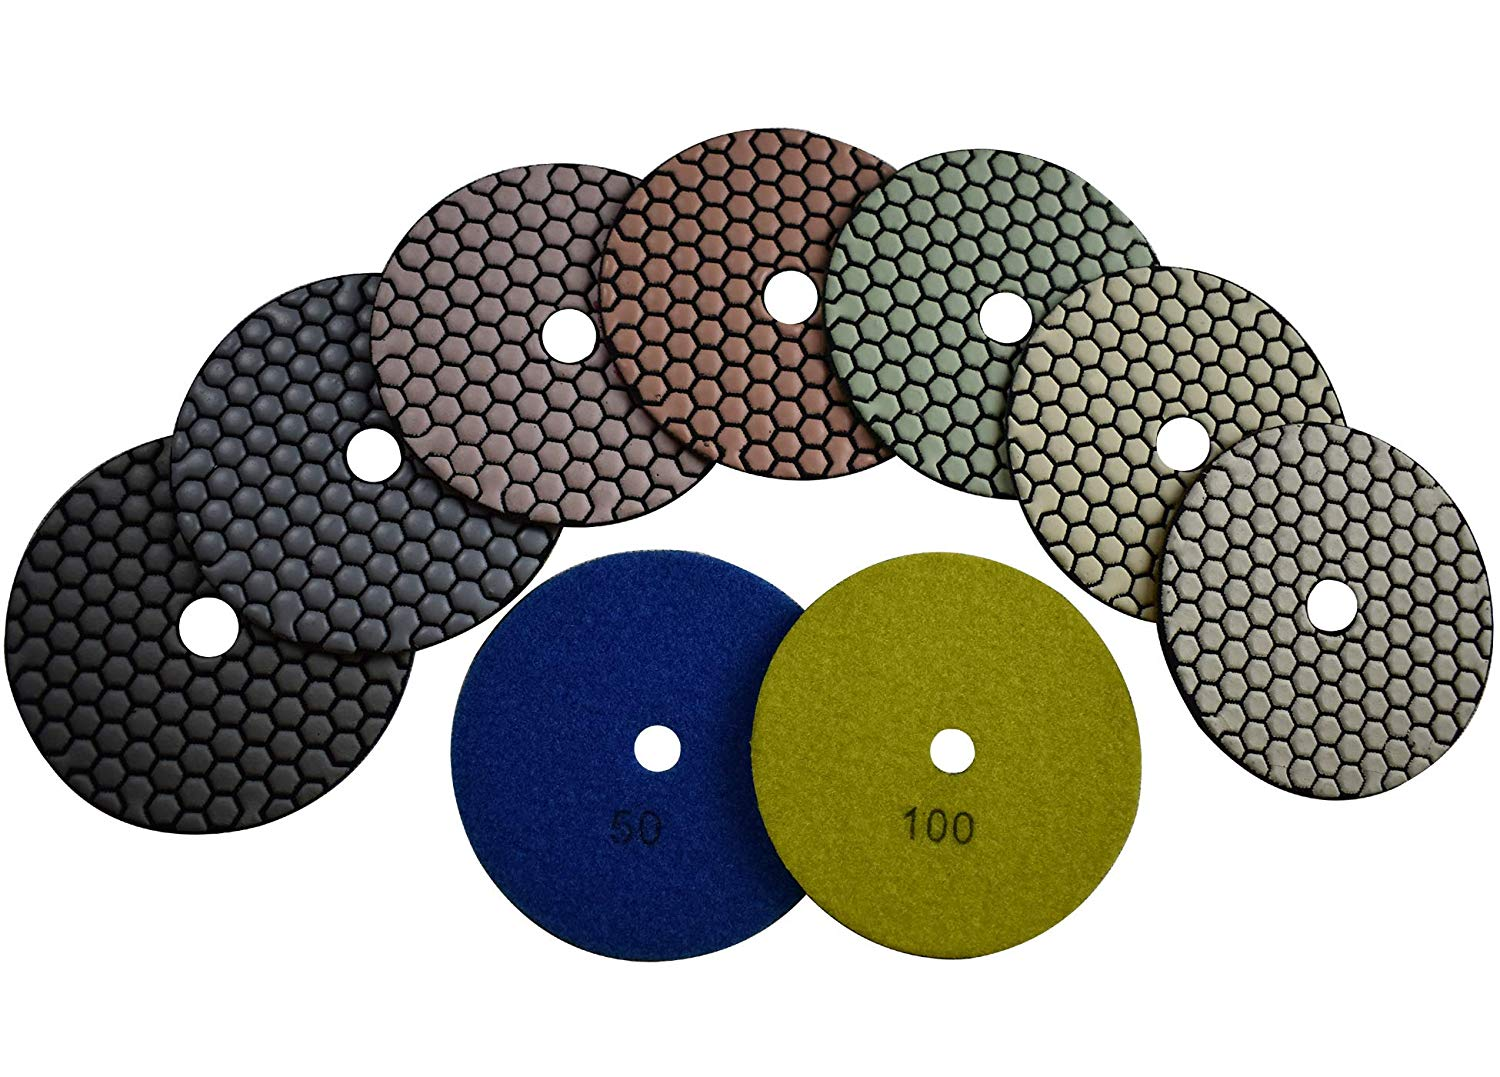 Konfor Dry Diamond 5 inch Polishing Pads Pack of 7 Best Value for Granite Marble Travertine Concrete Quartz Terrazzo Renew